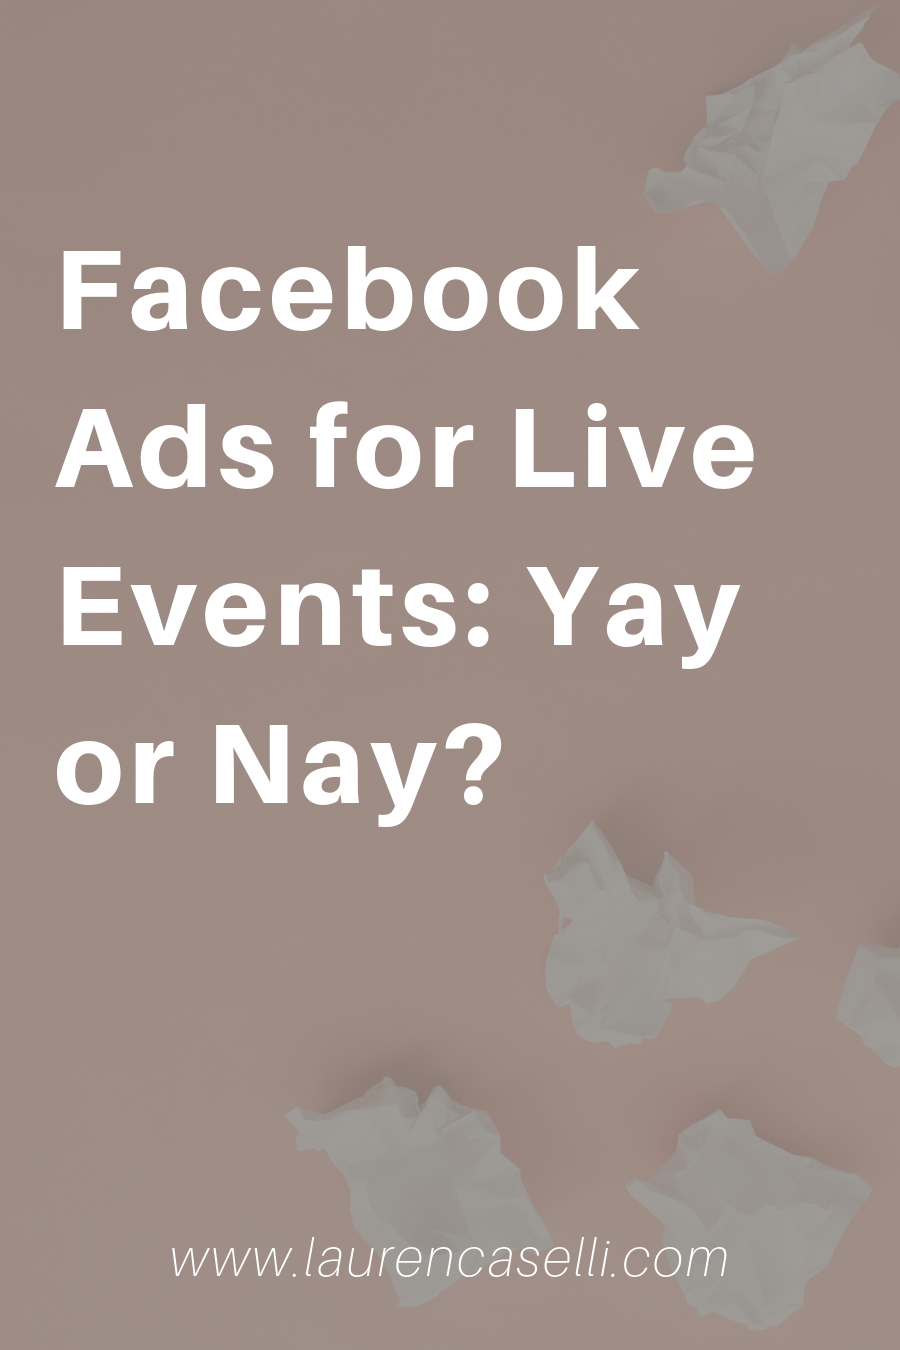 Should you use facebook ads to market your live events? In this post, I'll share my thoughts on why or why not!